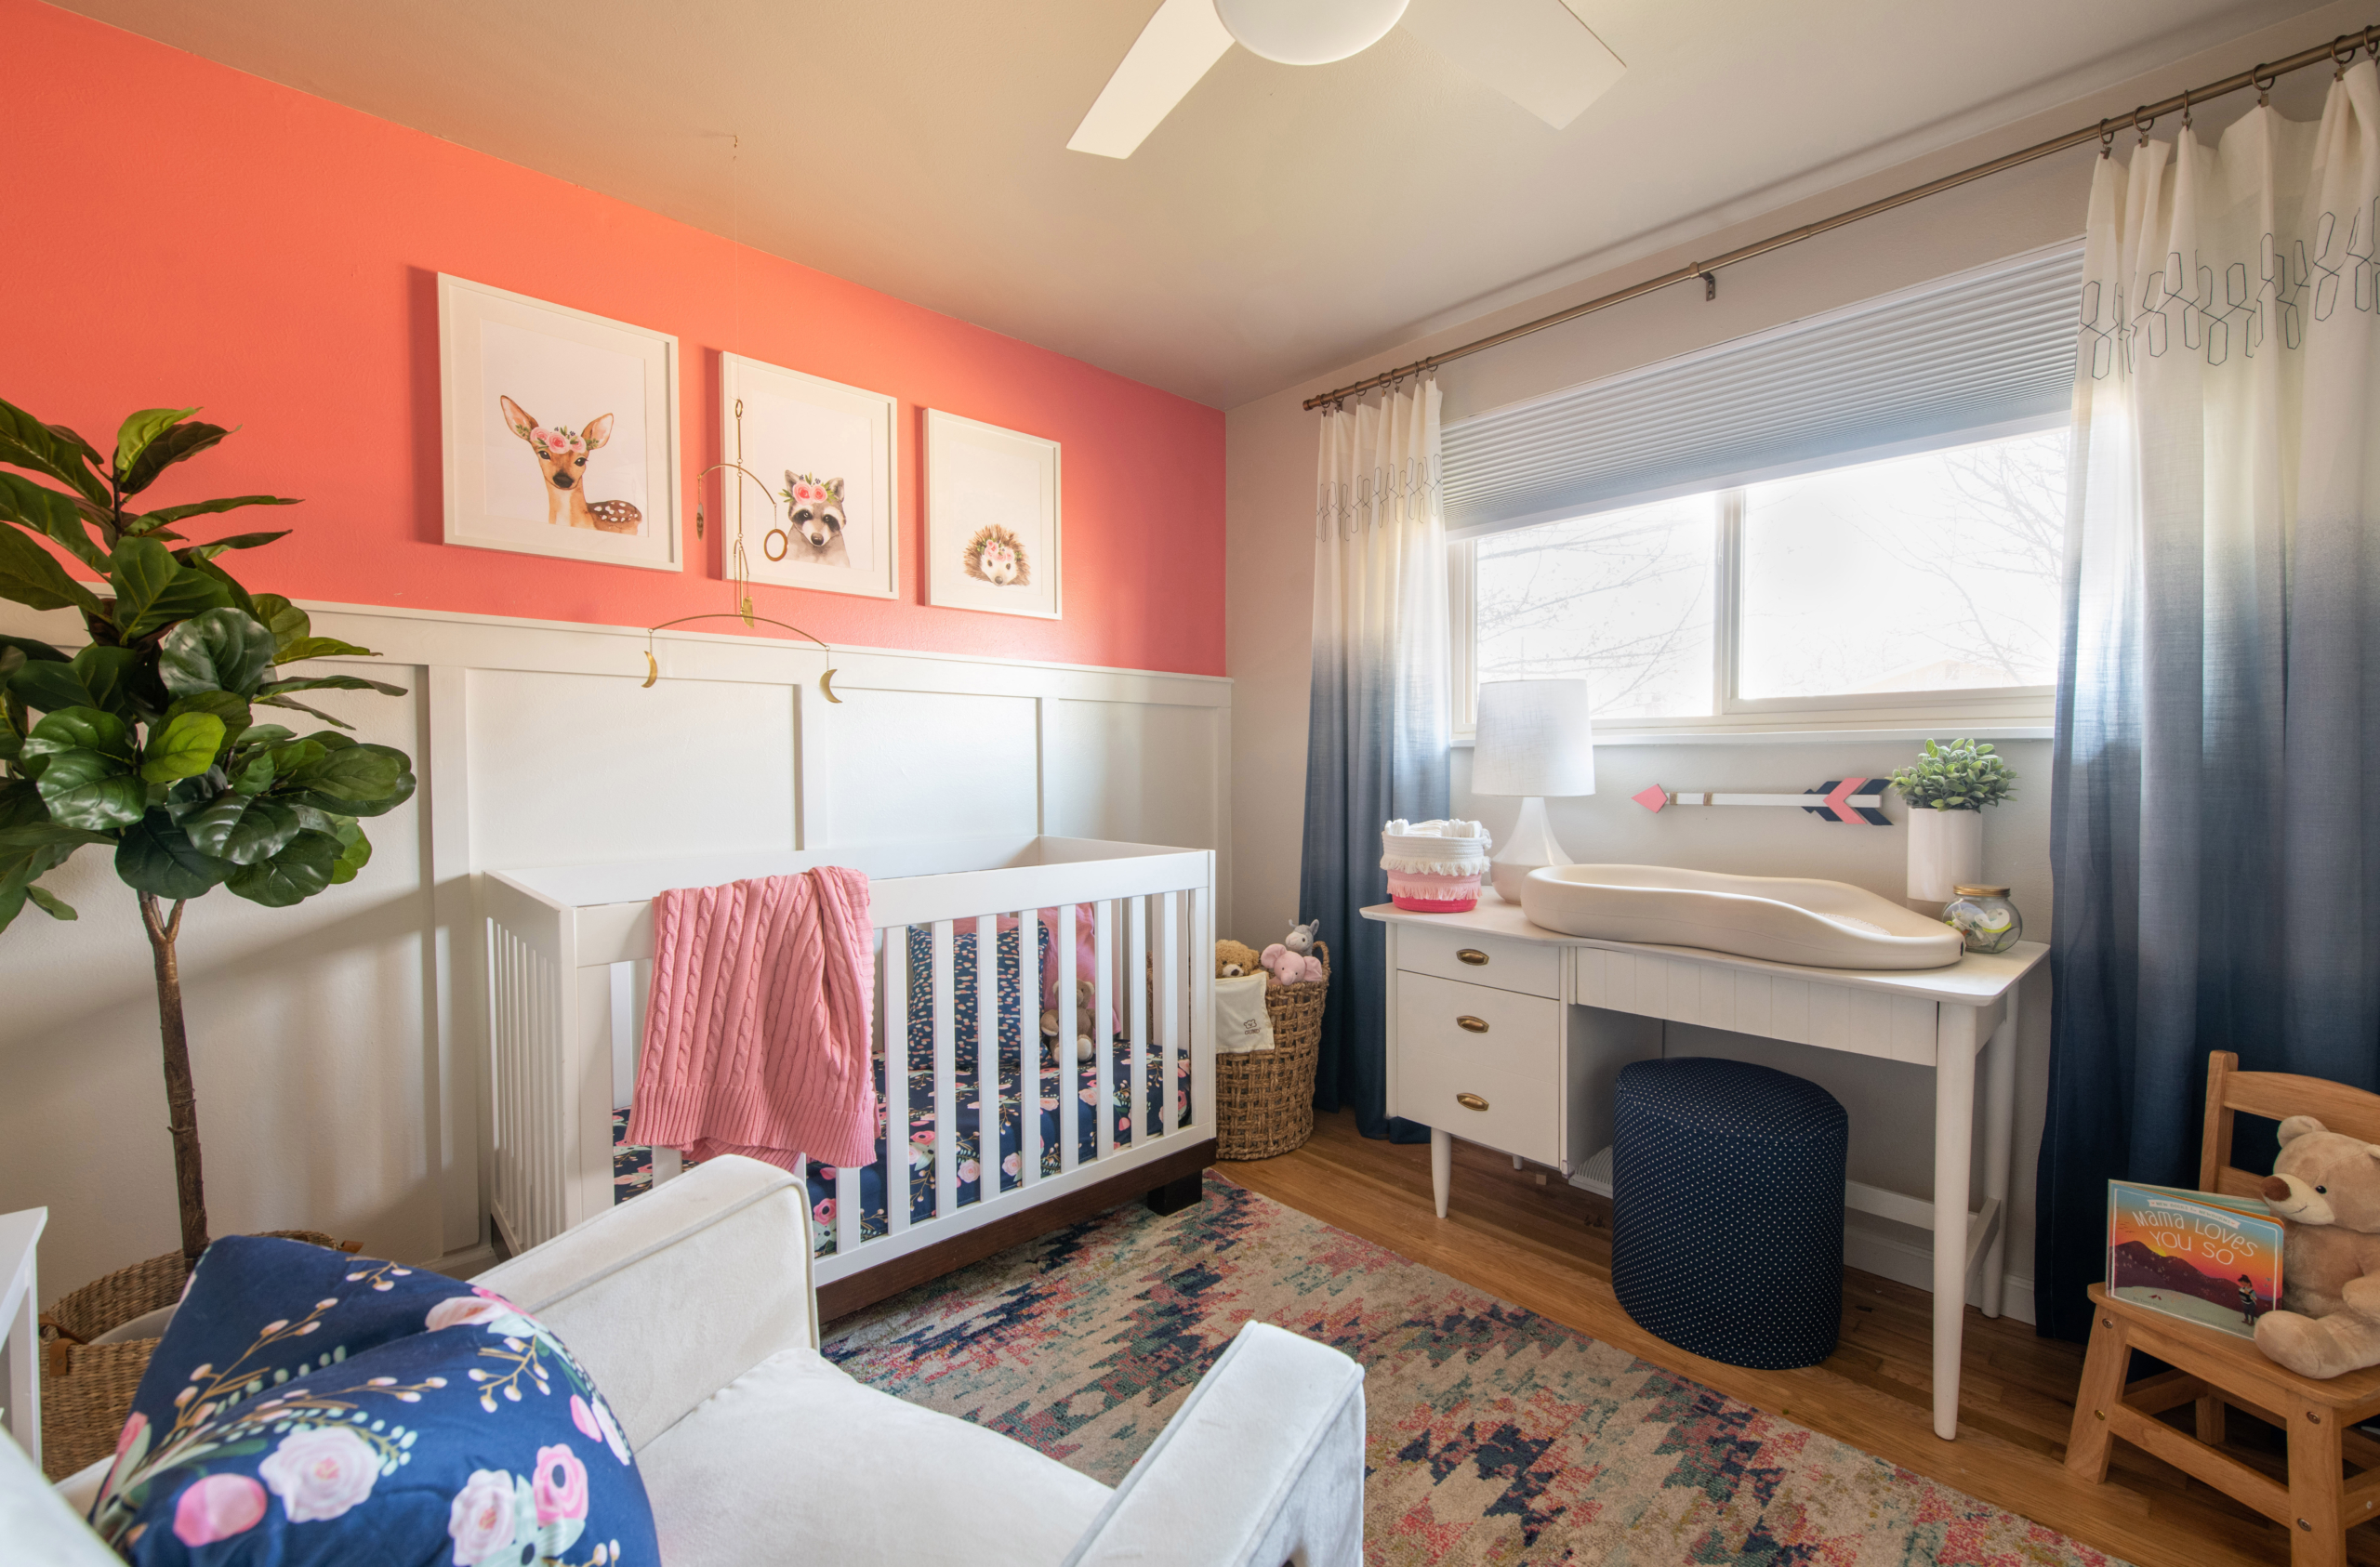 Nursery pink and blue theme changing table view